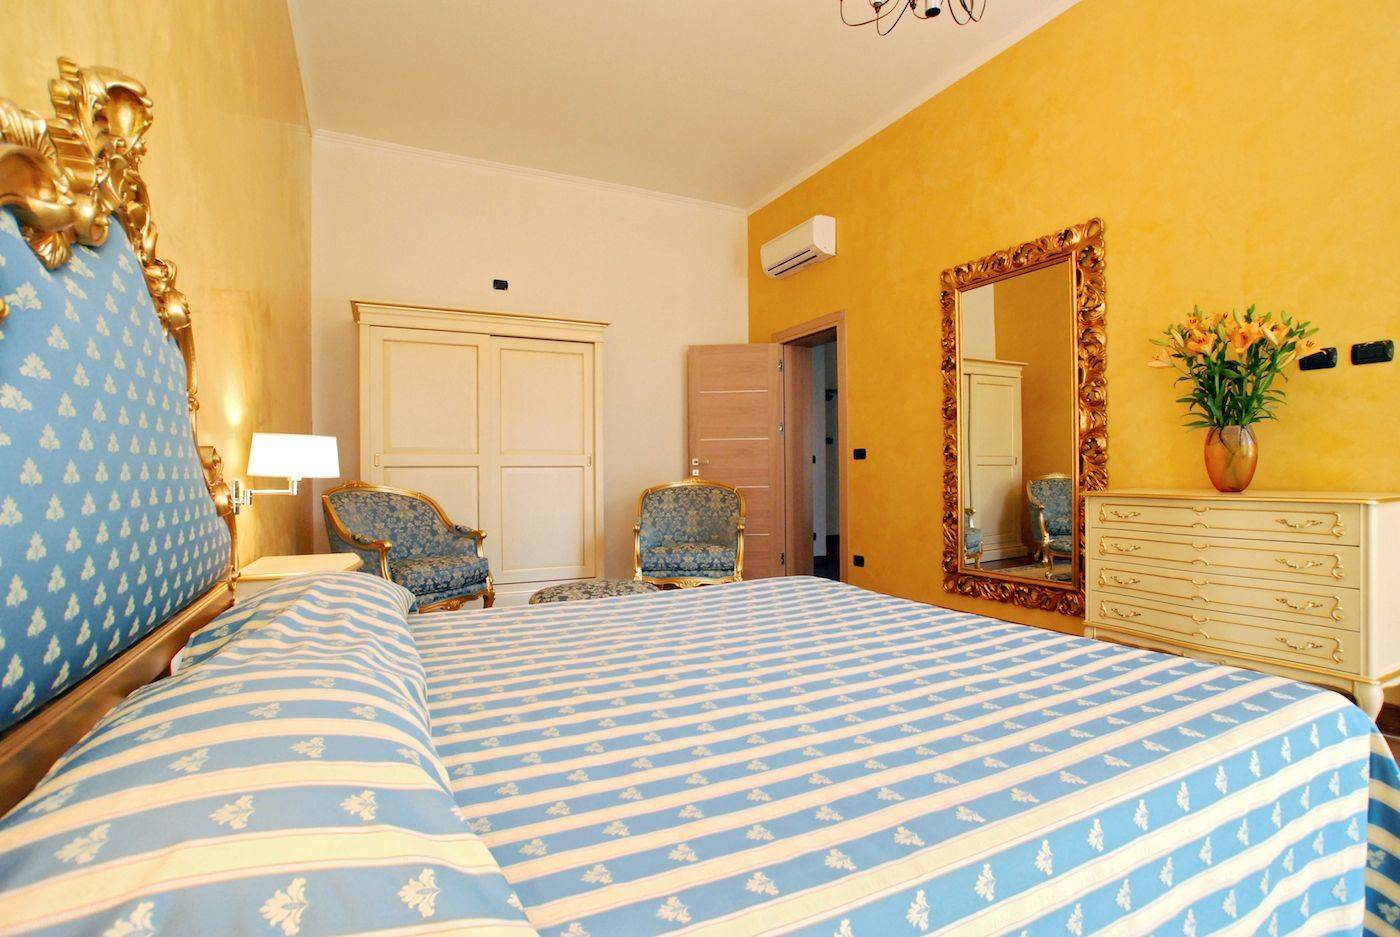 Giorgione apartment: king size bedroom with balcony on canal